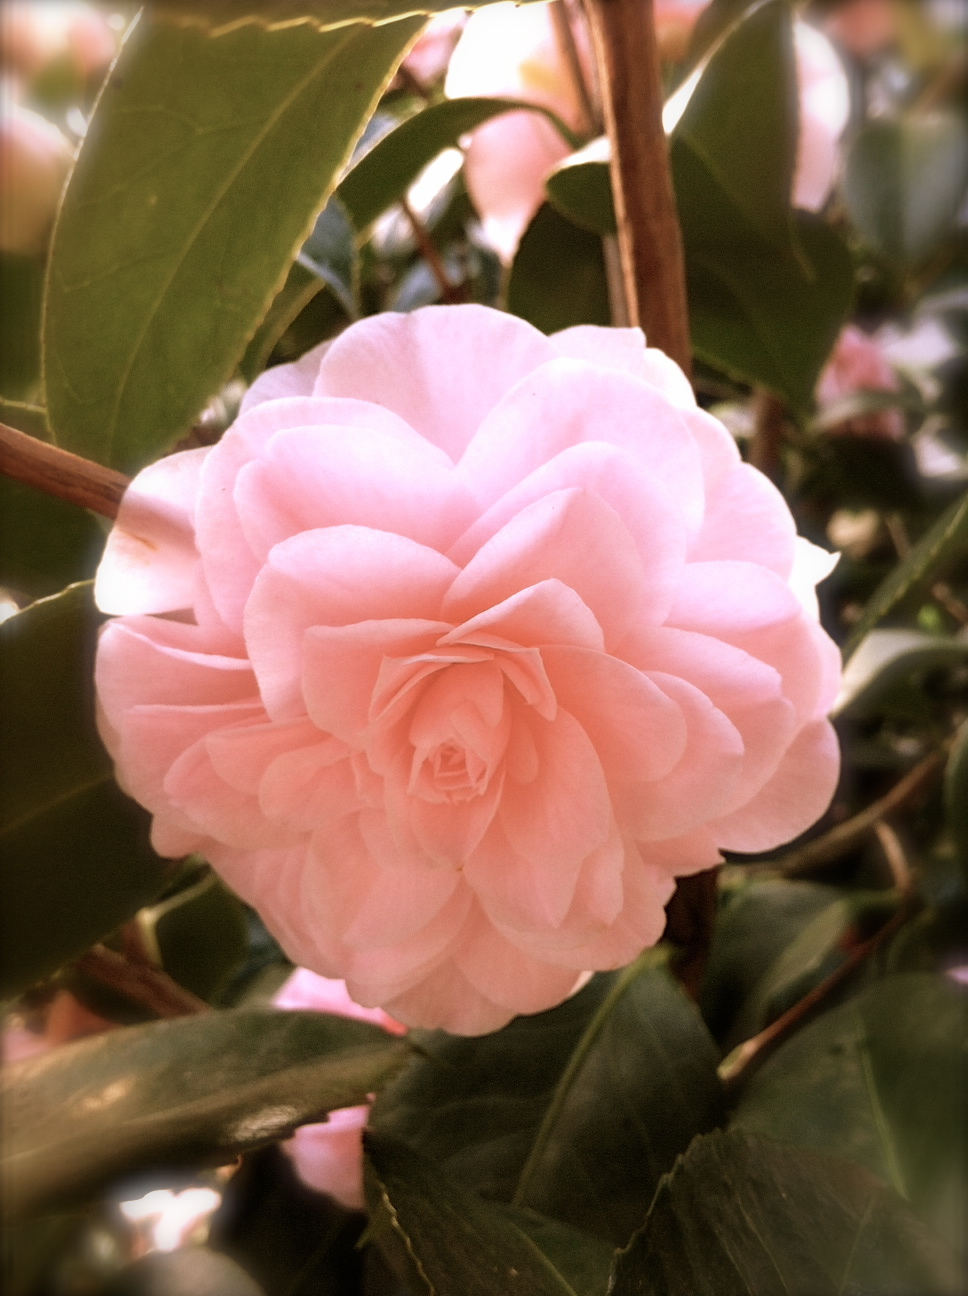 MemoriesOfCamellias